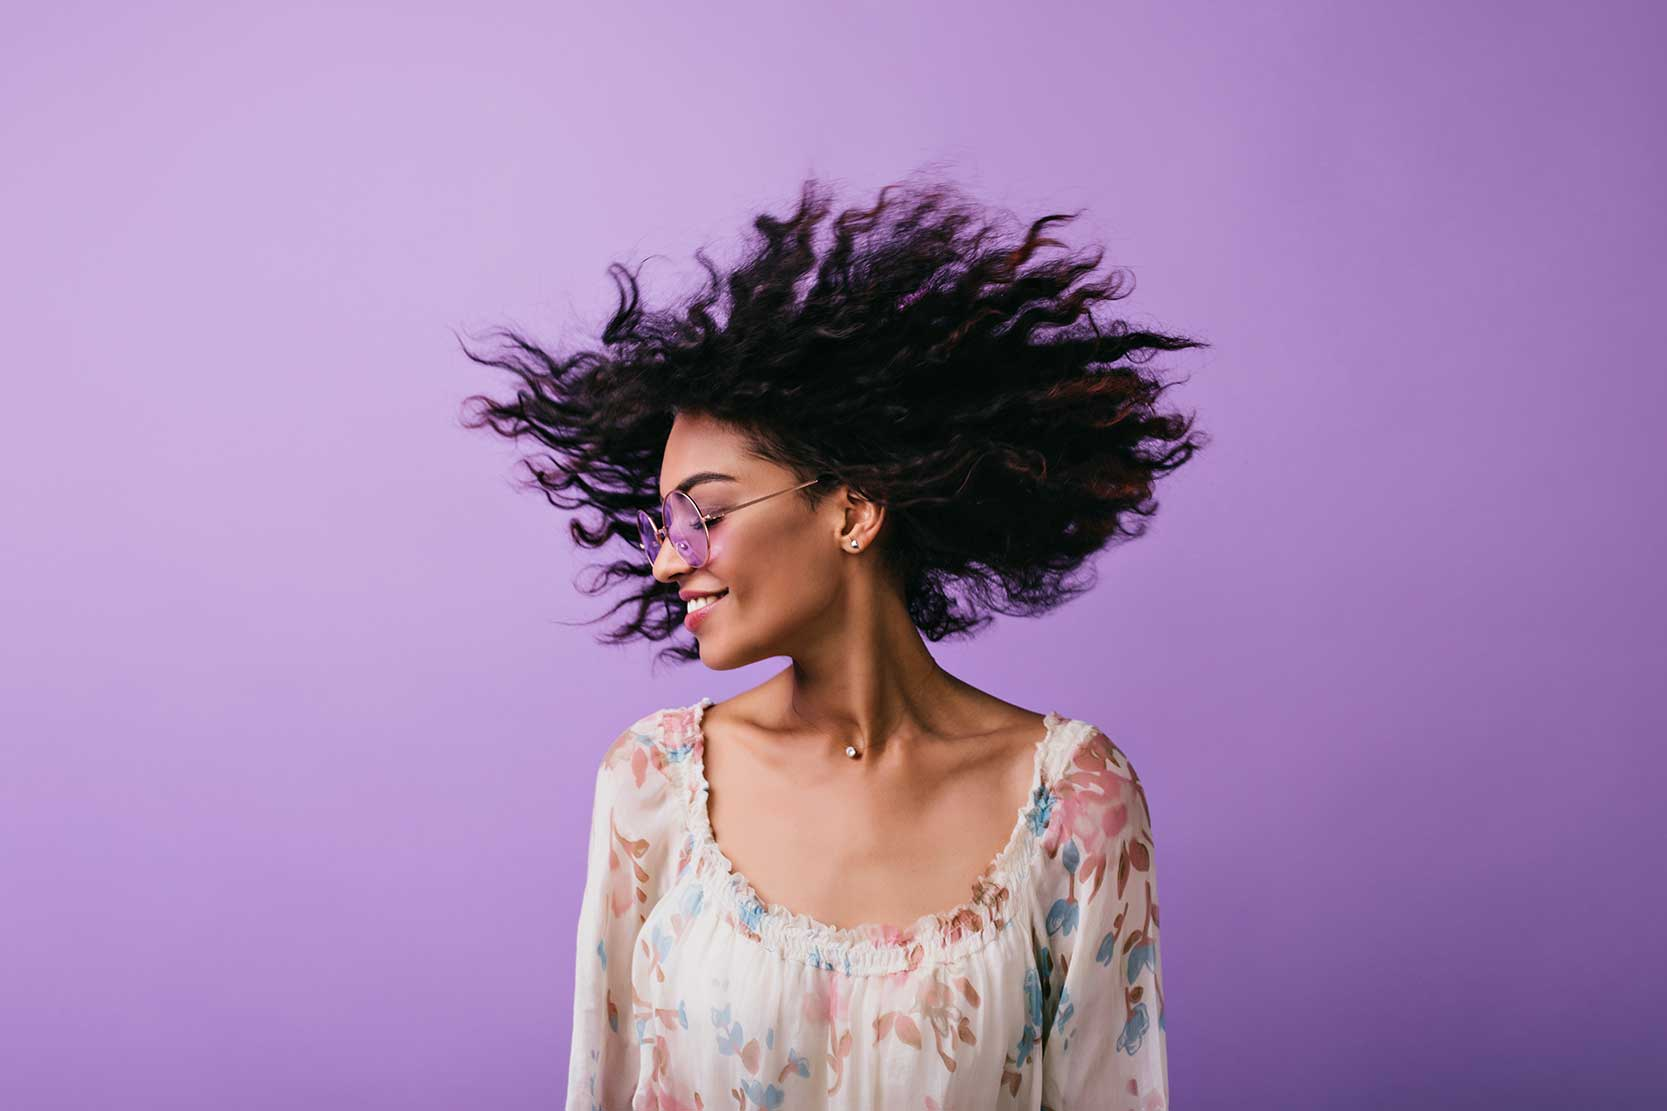 Portrait of a woman with hair blowing through the wind